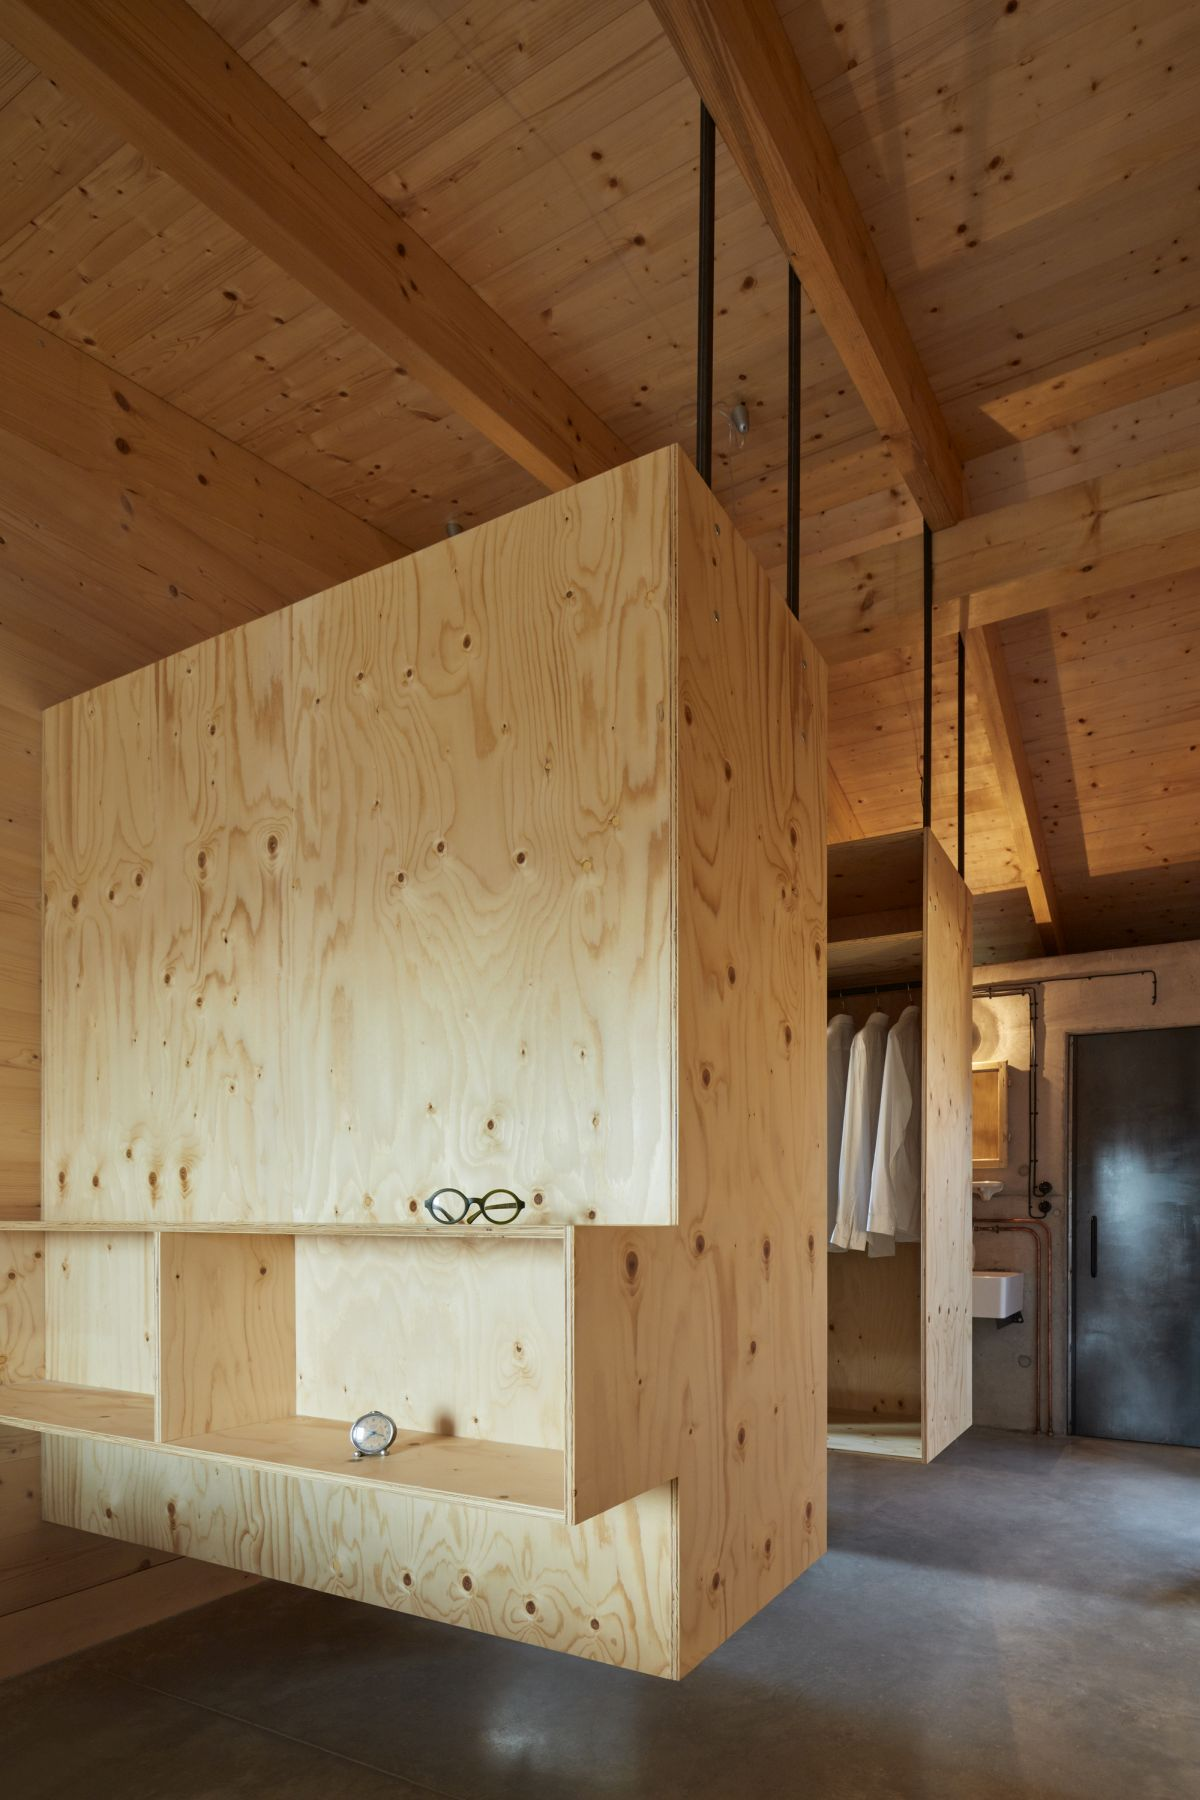 The master bedroom features wardrobe units hanging from the ceiling which saves floor space and creates an airy look